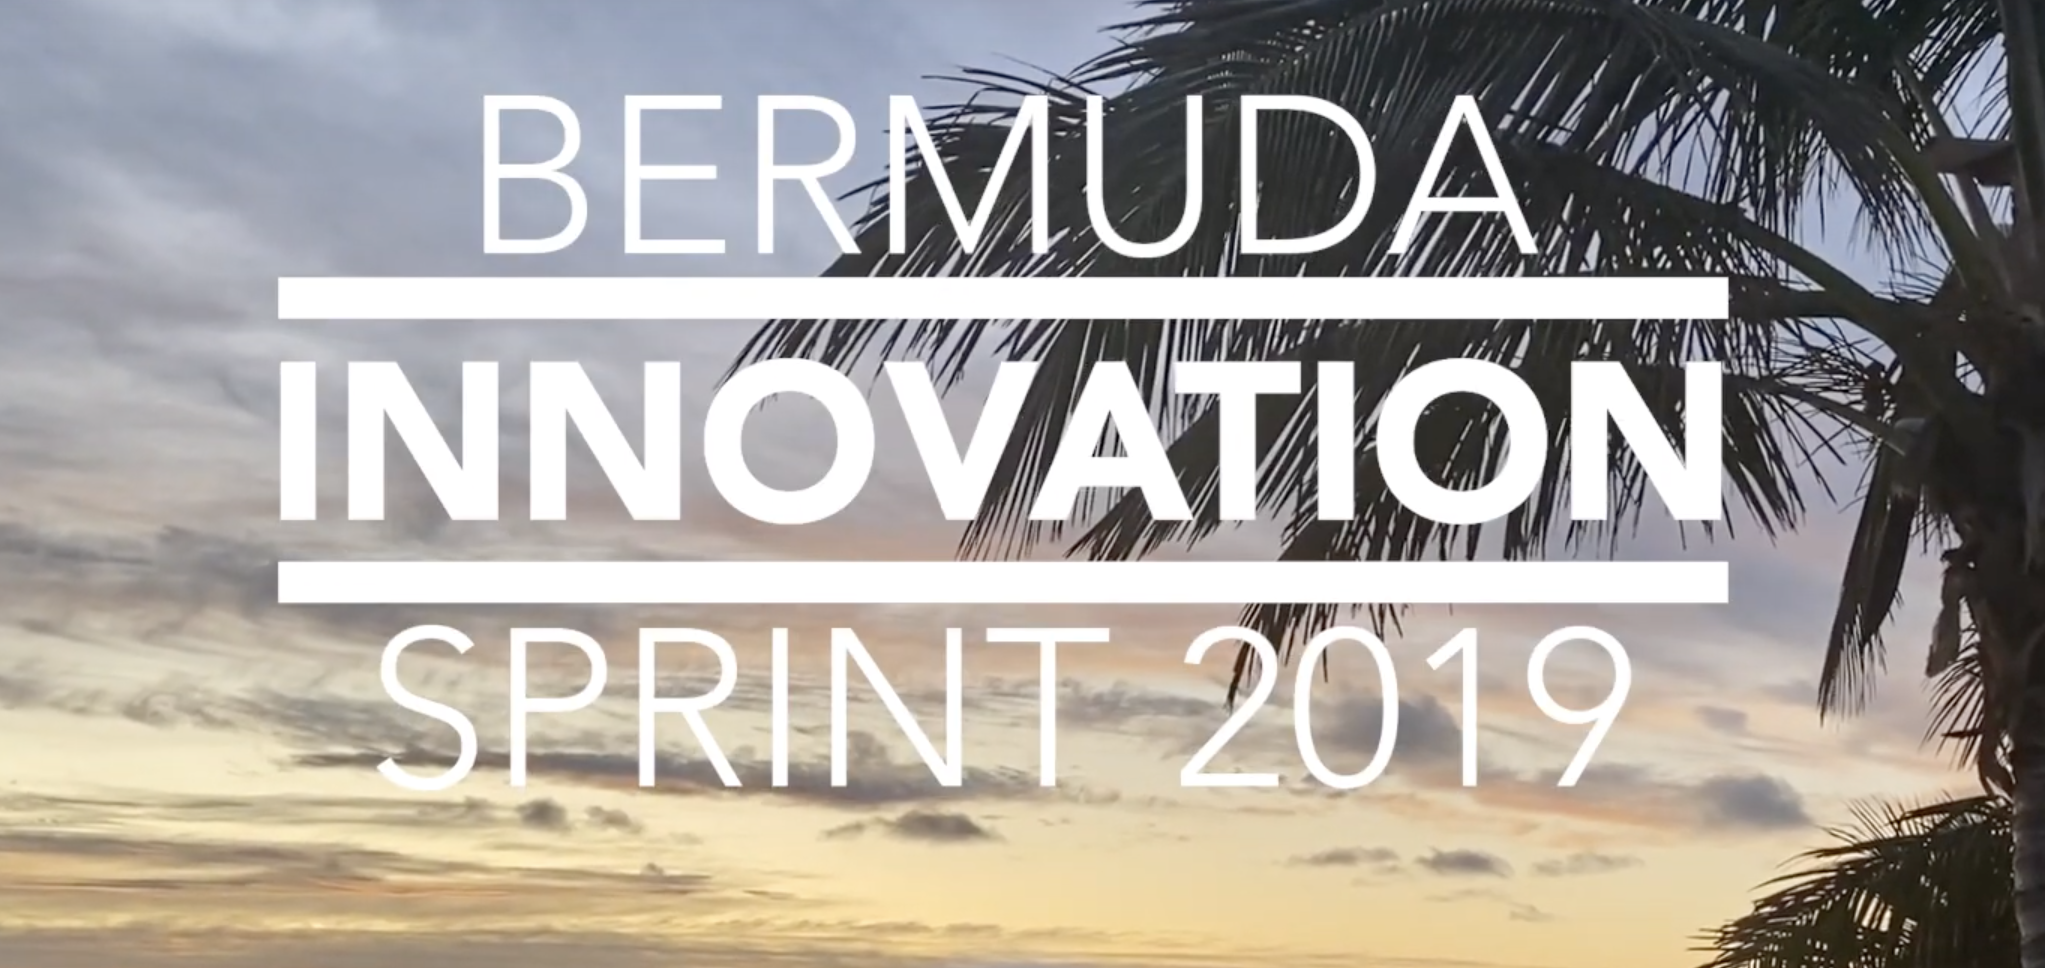 Building a Global Digital Middle Class - Outcomes from the Bermuda Innovation Sprint 2019